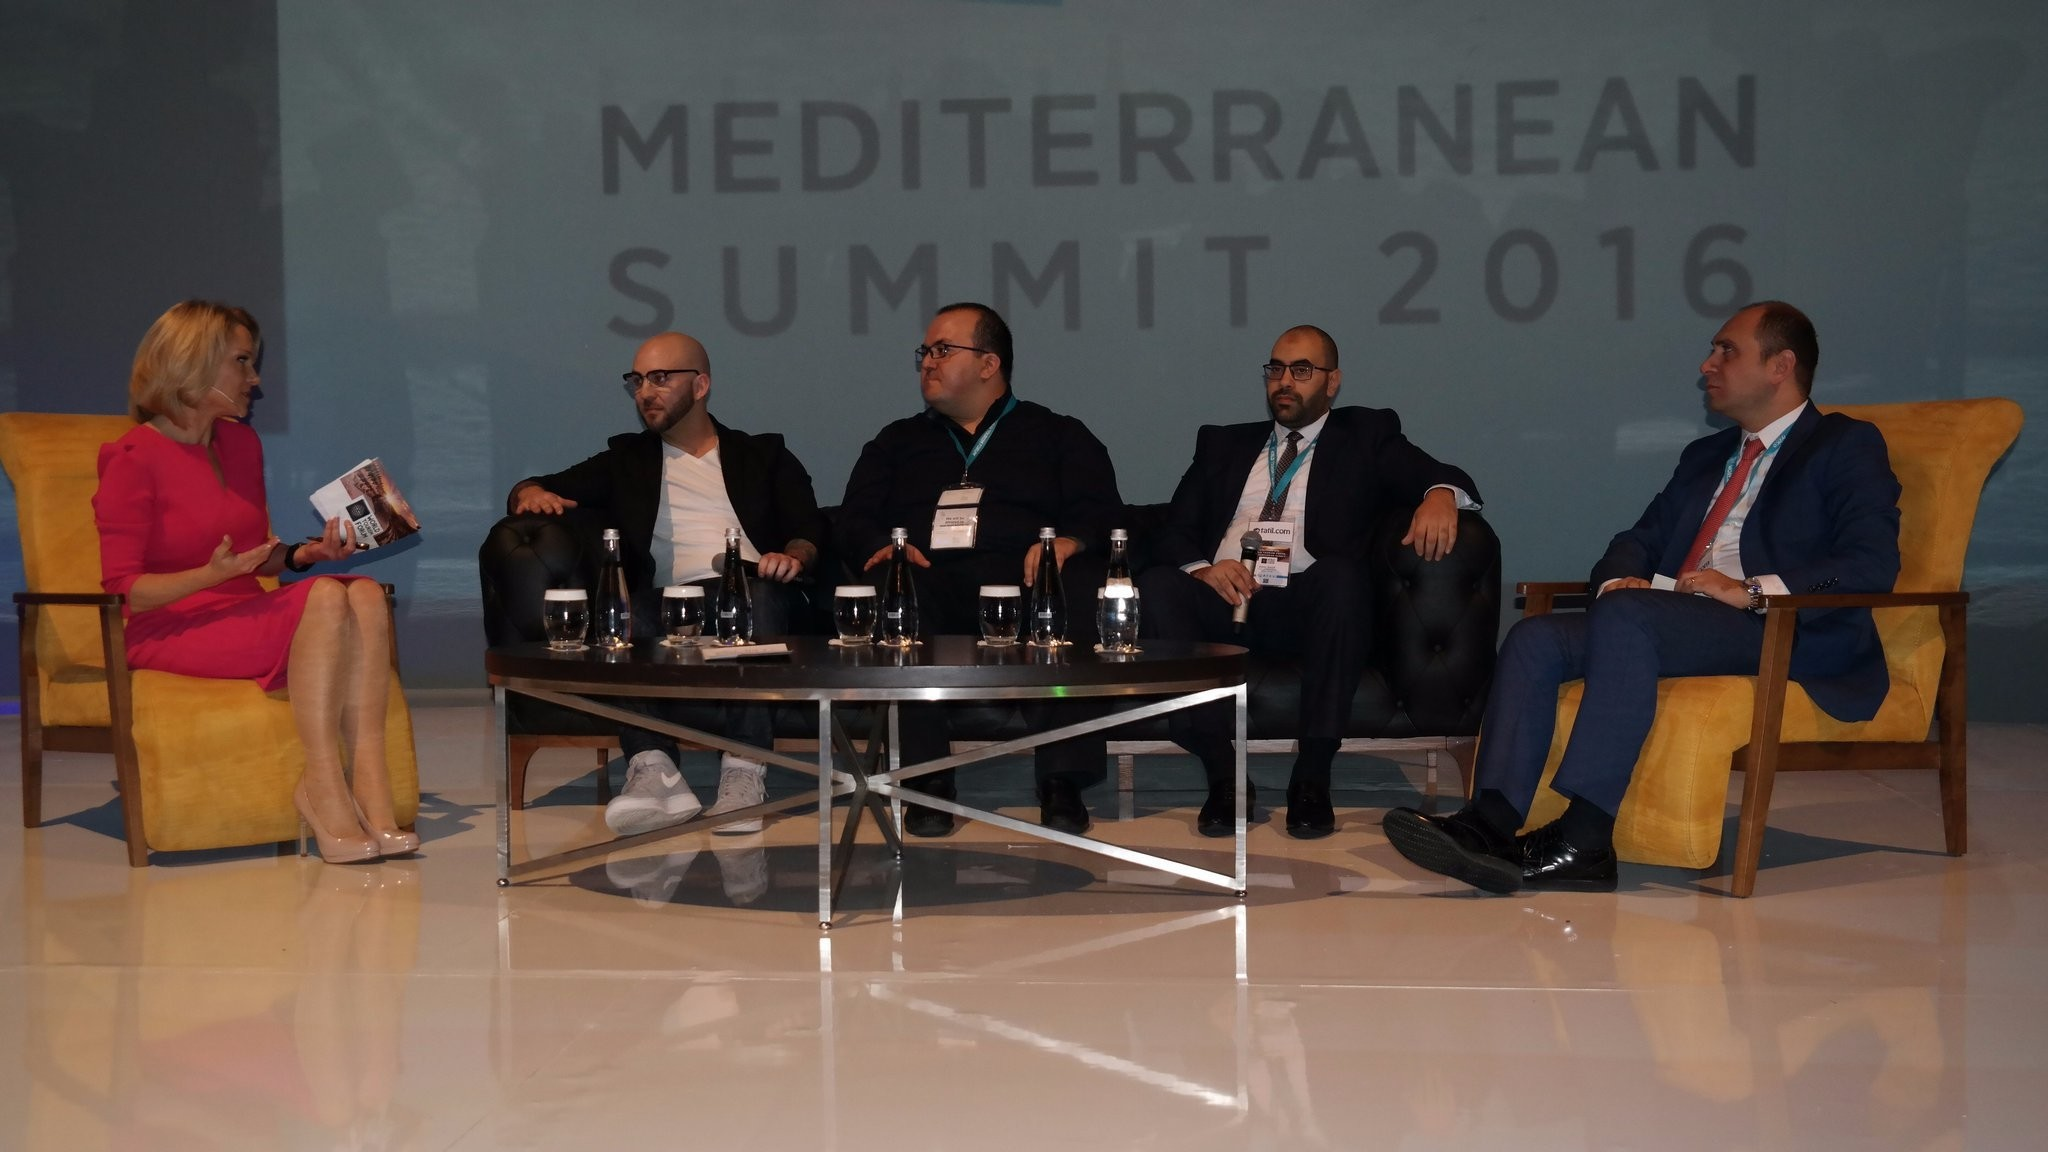 K. Madera (L) of BBC World News moderates the u201cMulti-Channel Usage of Tourismu201d session in which W. Isbrucker (Booking), E. u00c7elik (Head of Sales Facebook), B. Badr (Attar Travel), & A. u0130u015fbulan (Gen. Manager TAV Op. Serv.) speak (from left to right).